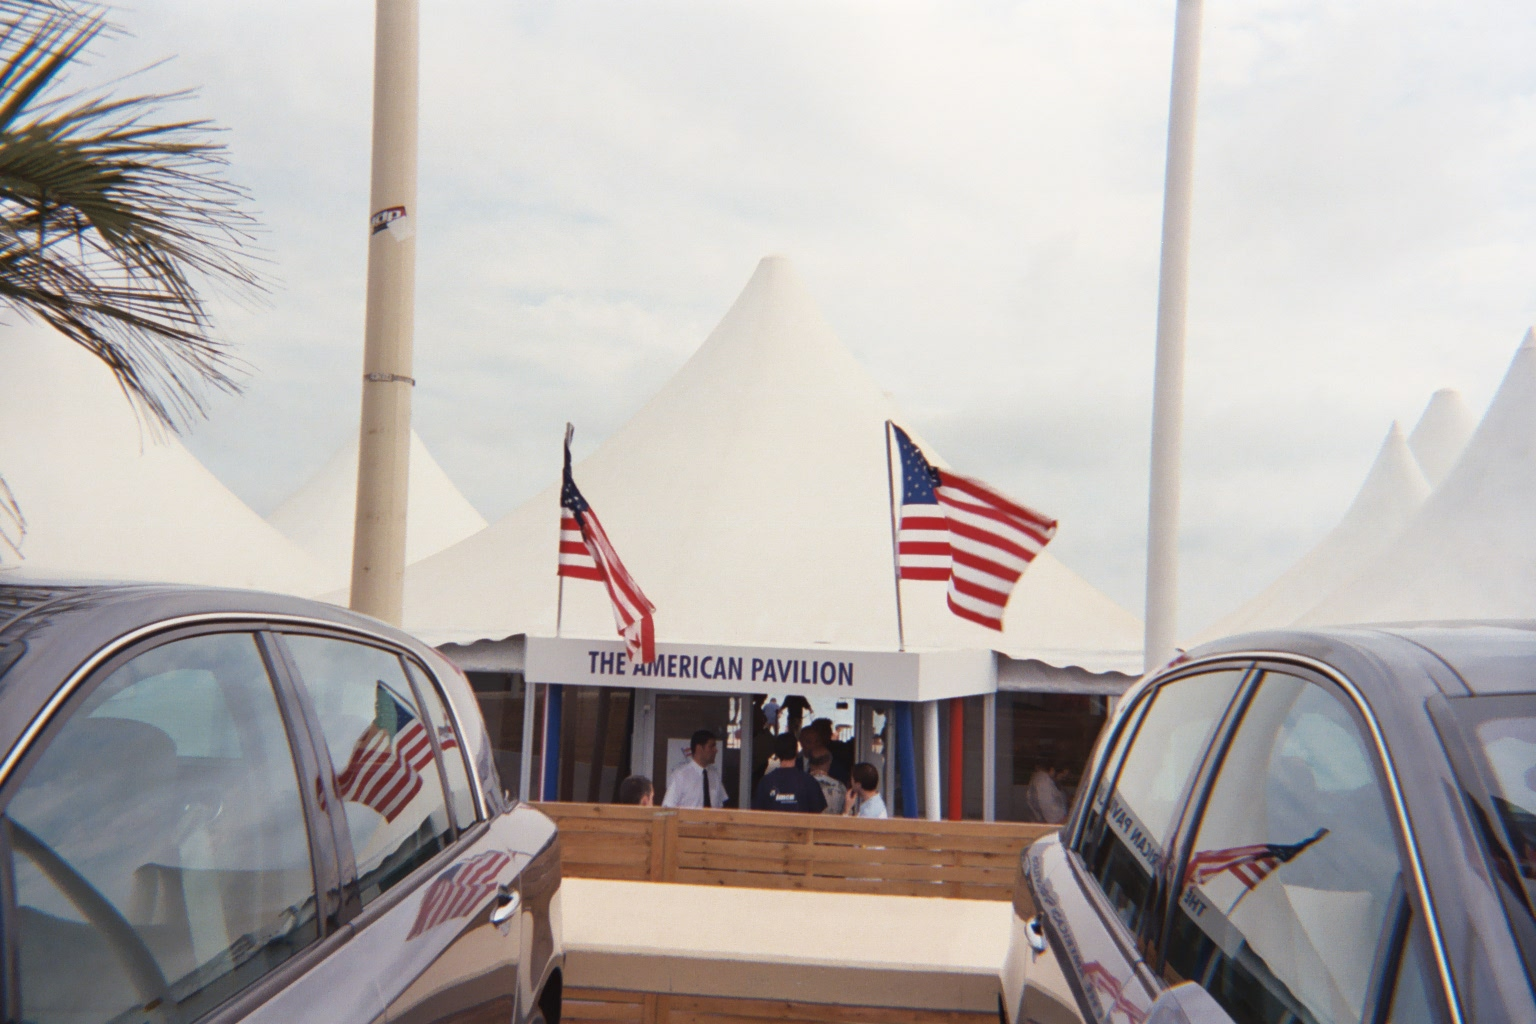 american Pavilion tent.Copyright 2003 Courtney Vallejo. All rights reserved.